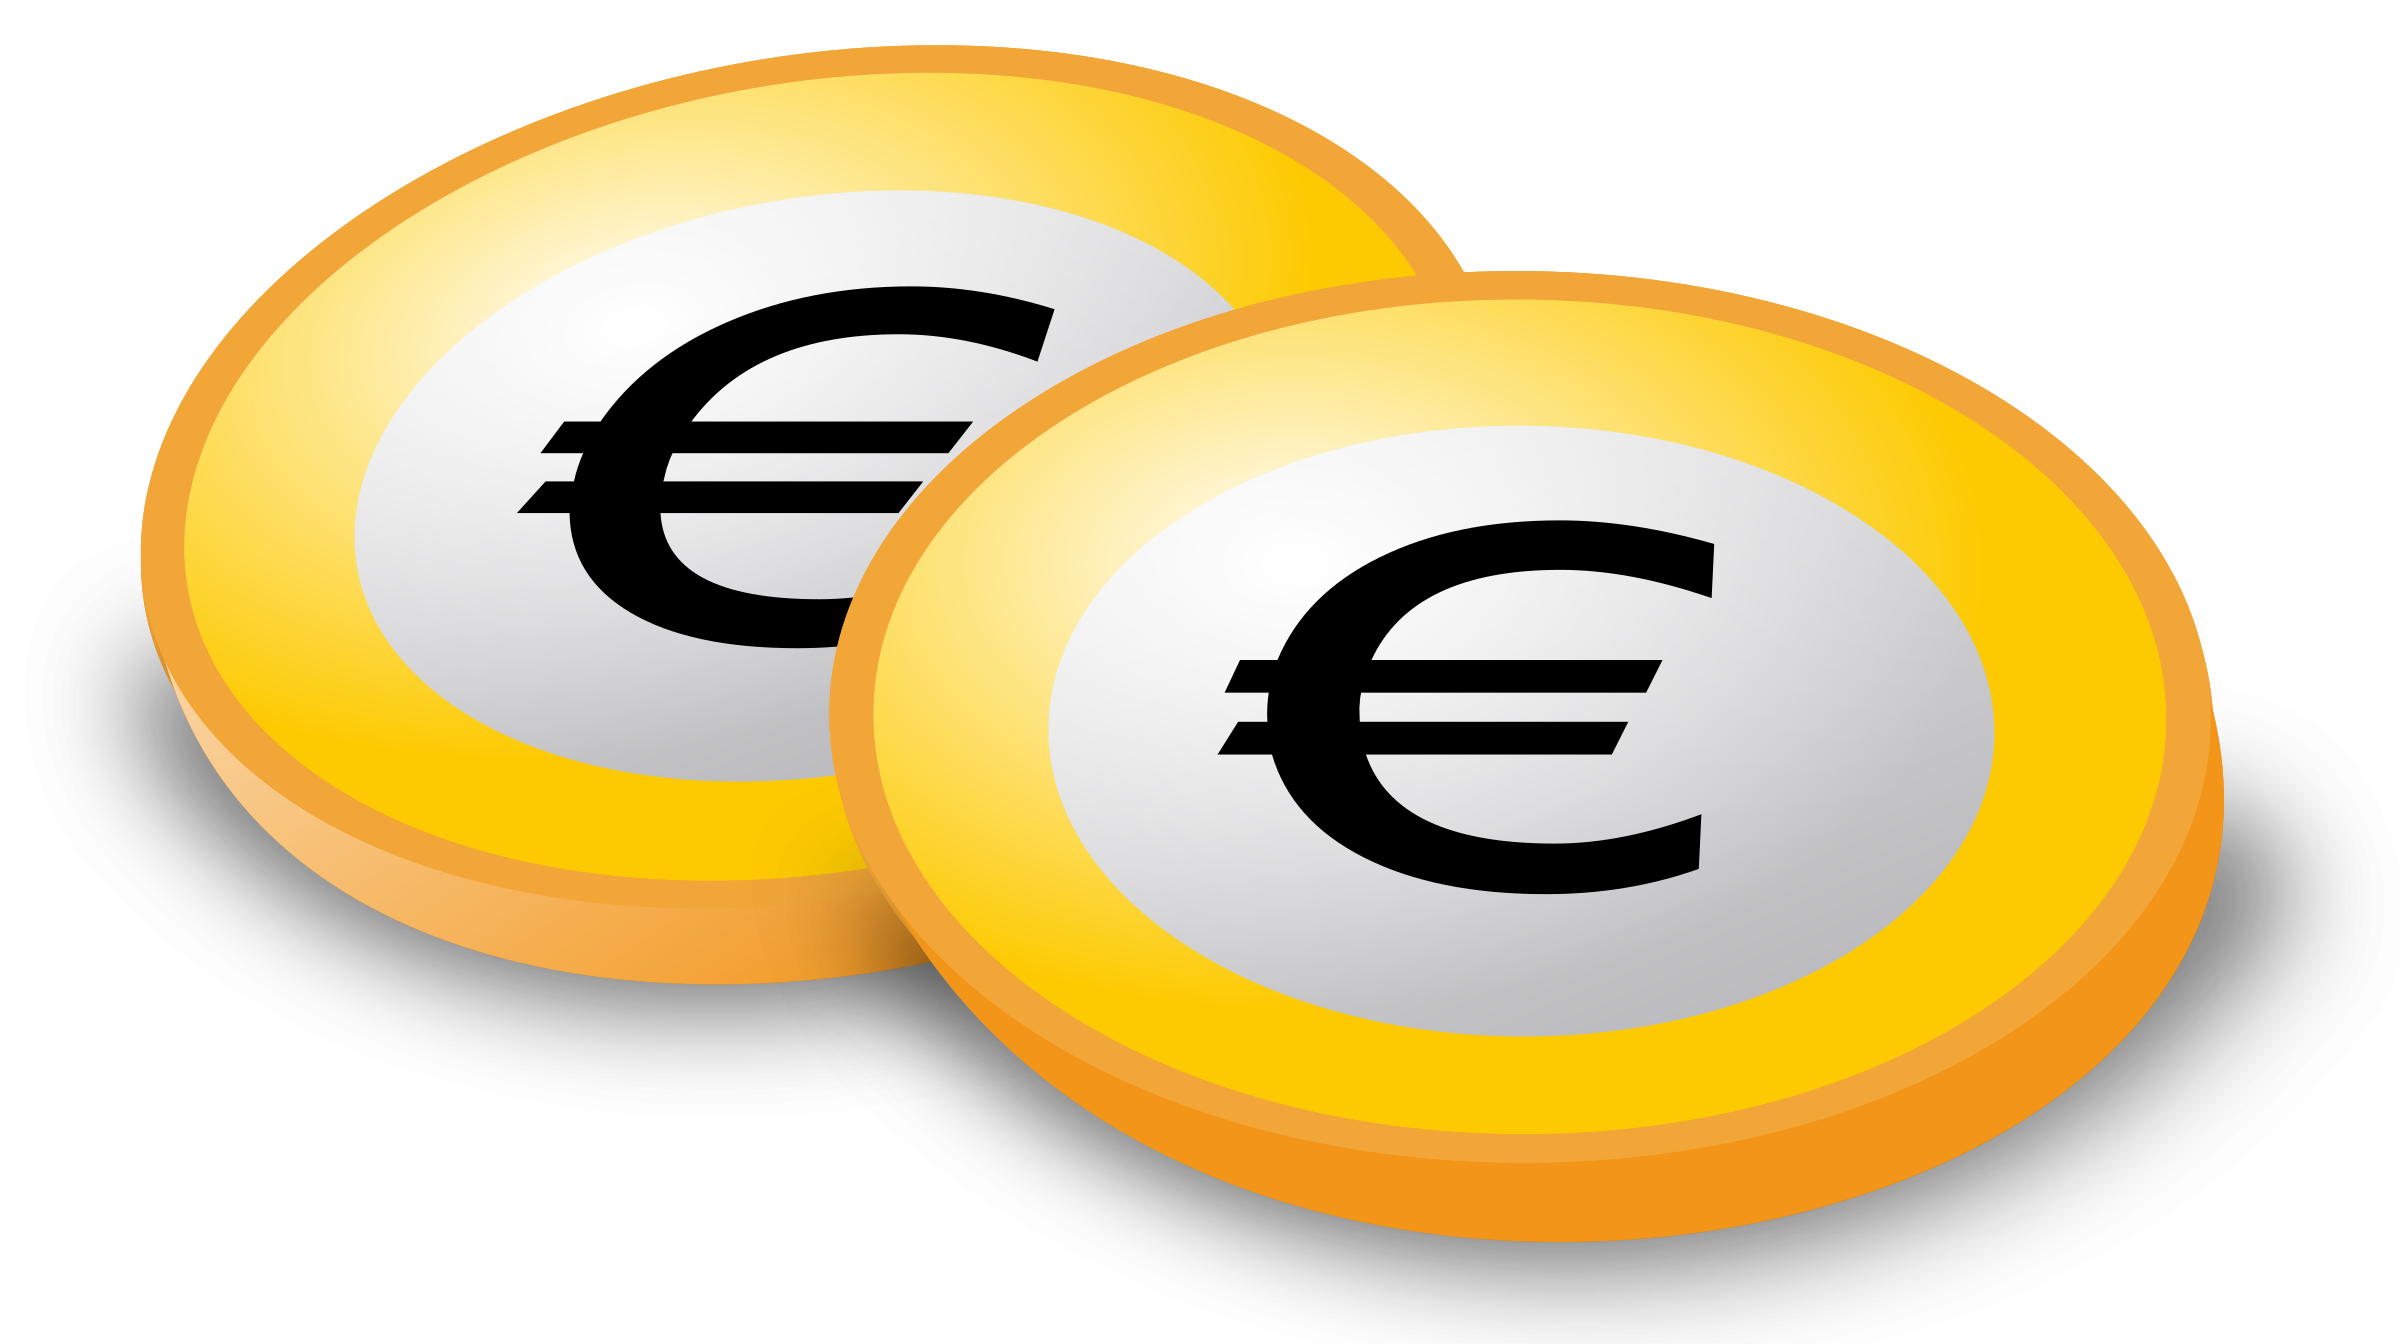 free clipart euro sign - photo #27